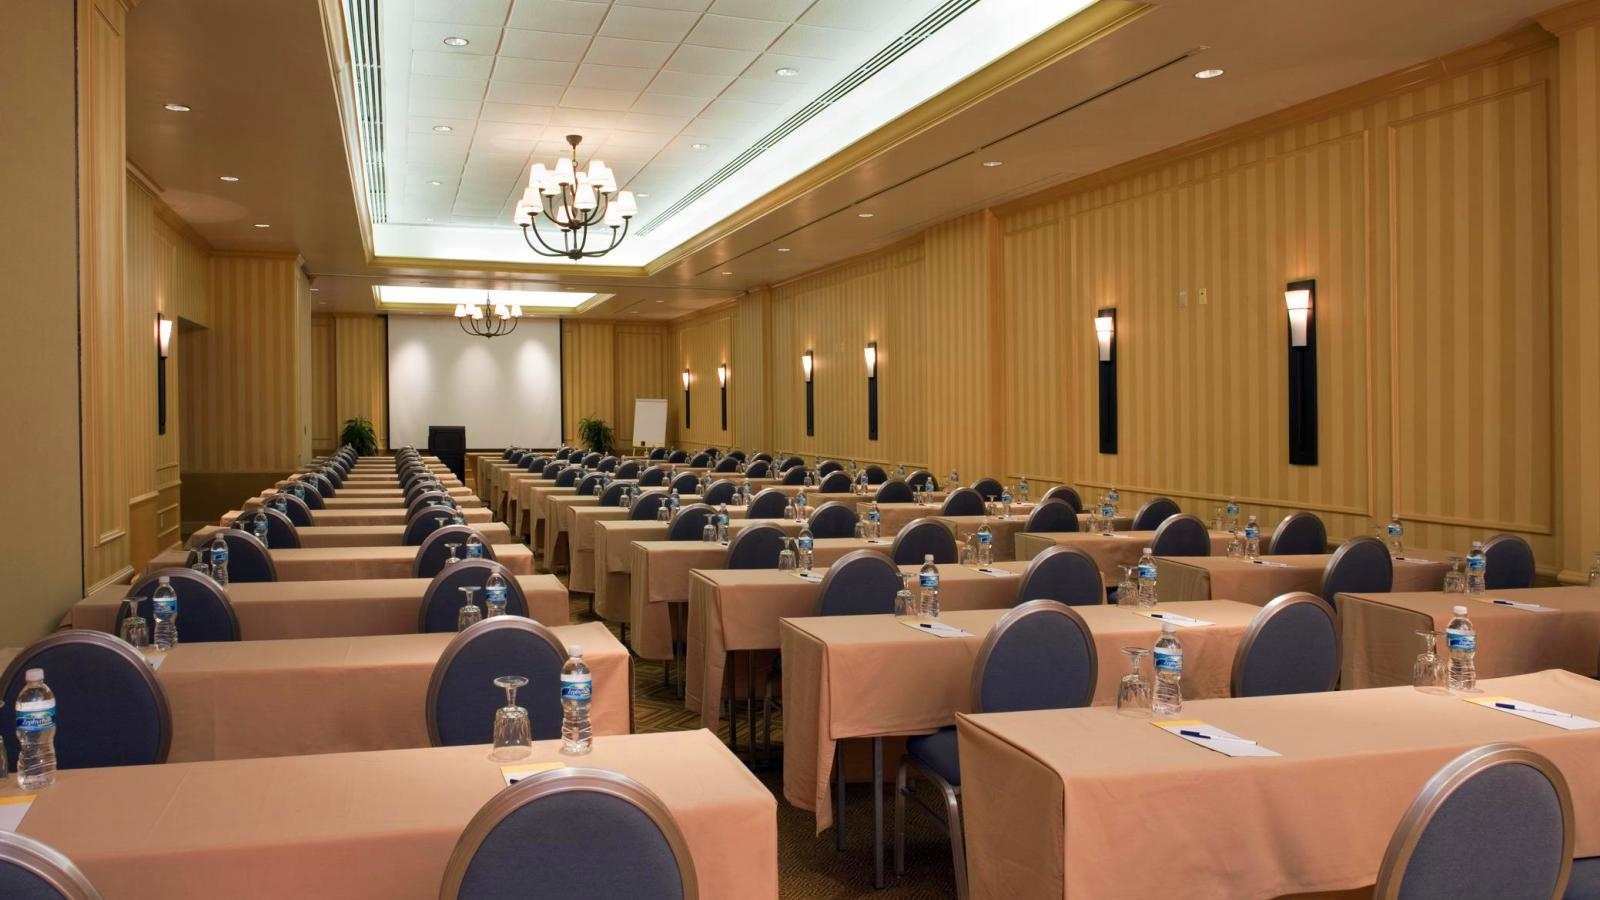 Fort Lauderdale Meeting & Event Space